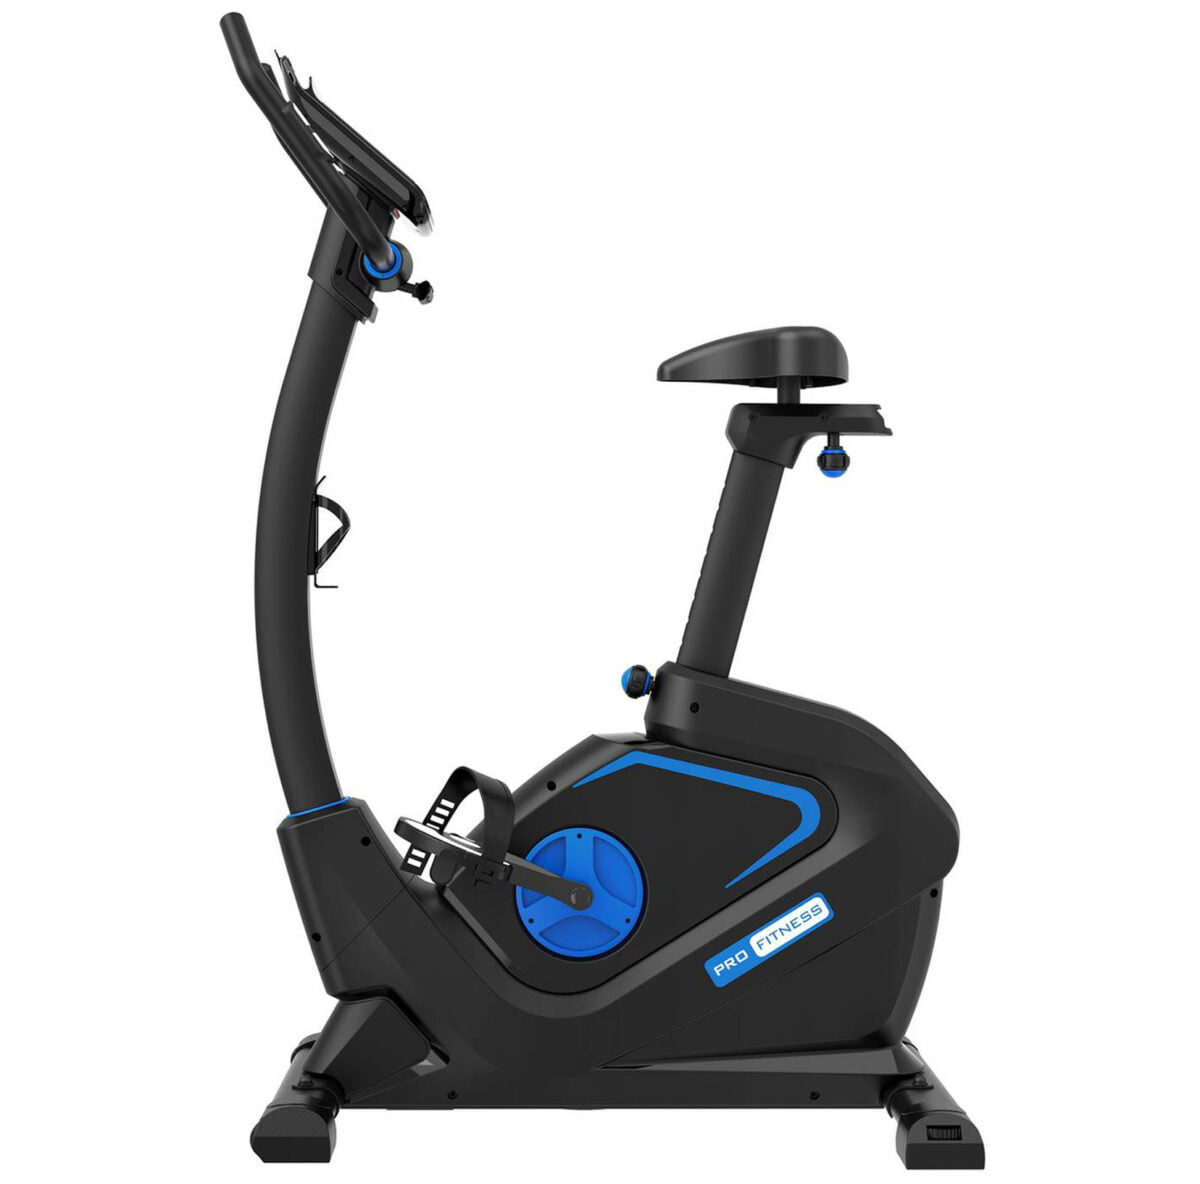 Pro Fitness EB3000 Exercise Bike in Blue and Black Colour